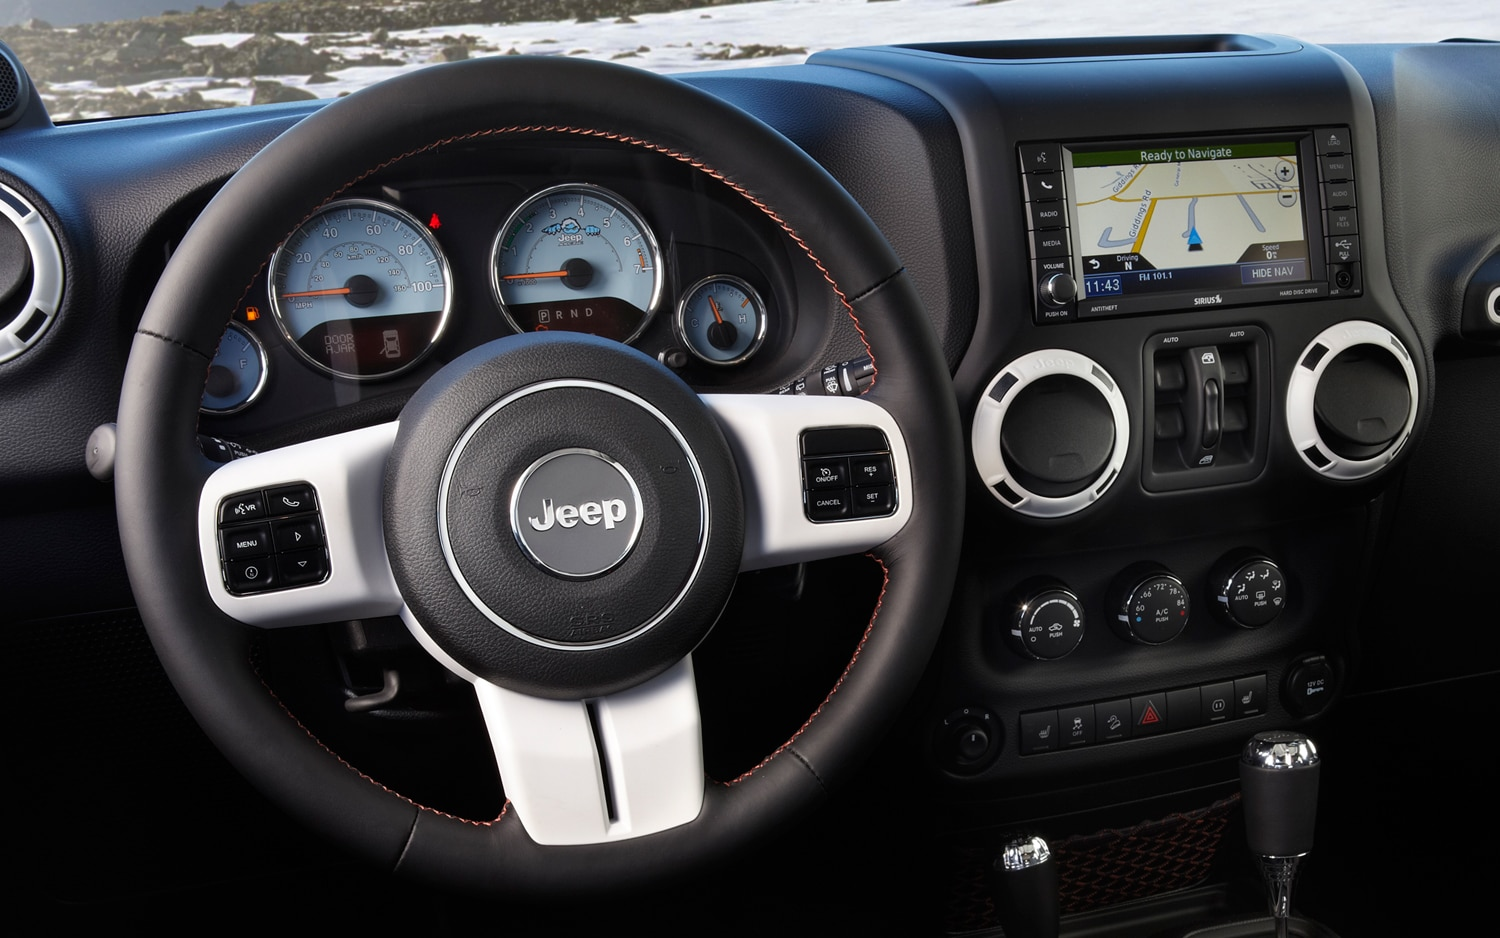 Jeep Wrangler Msrp >> Jeep Brings Arctic Edition Package To U.S.-Spec 2012 Wrangler, Liberty Models